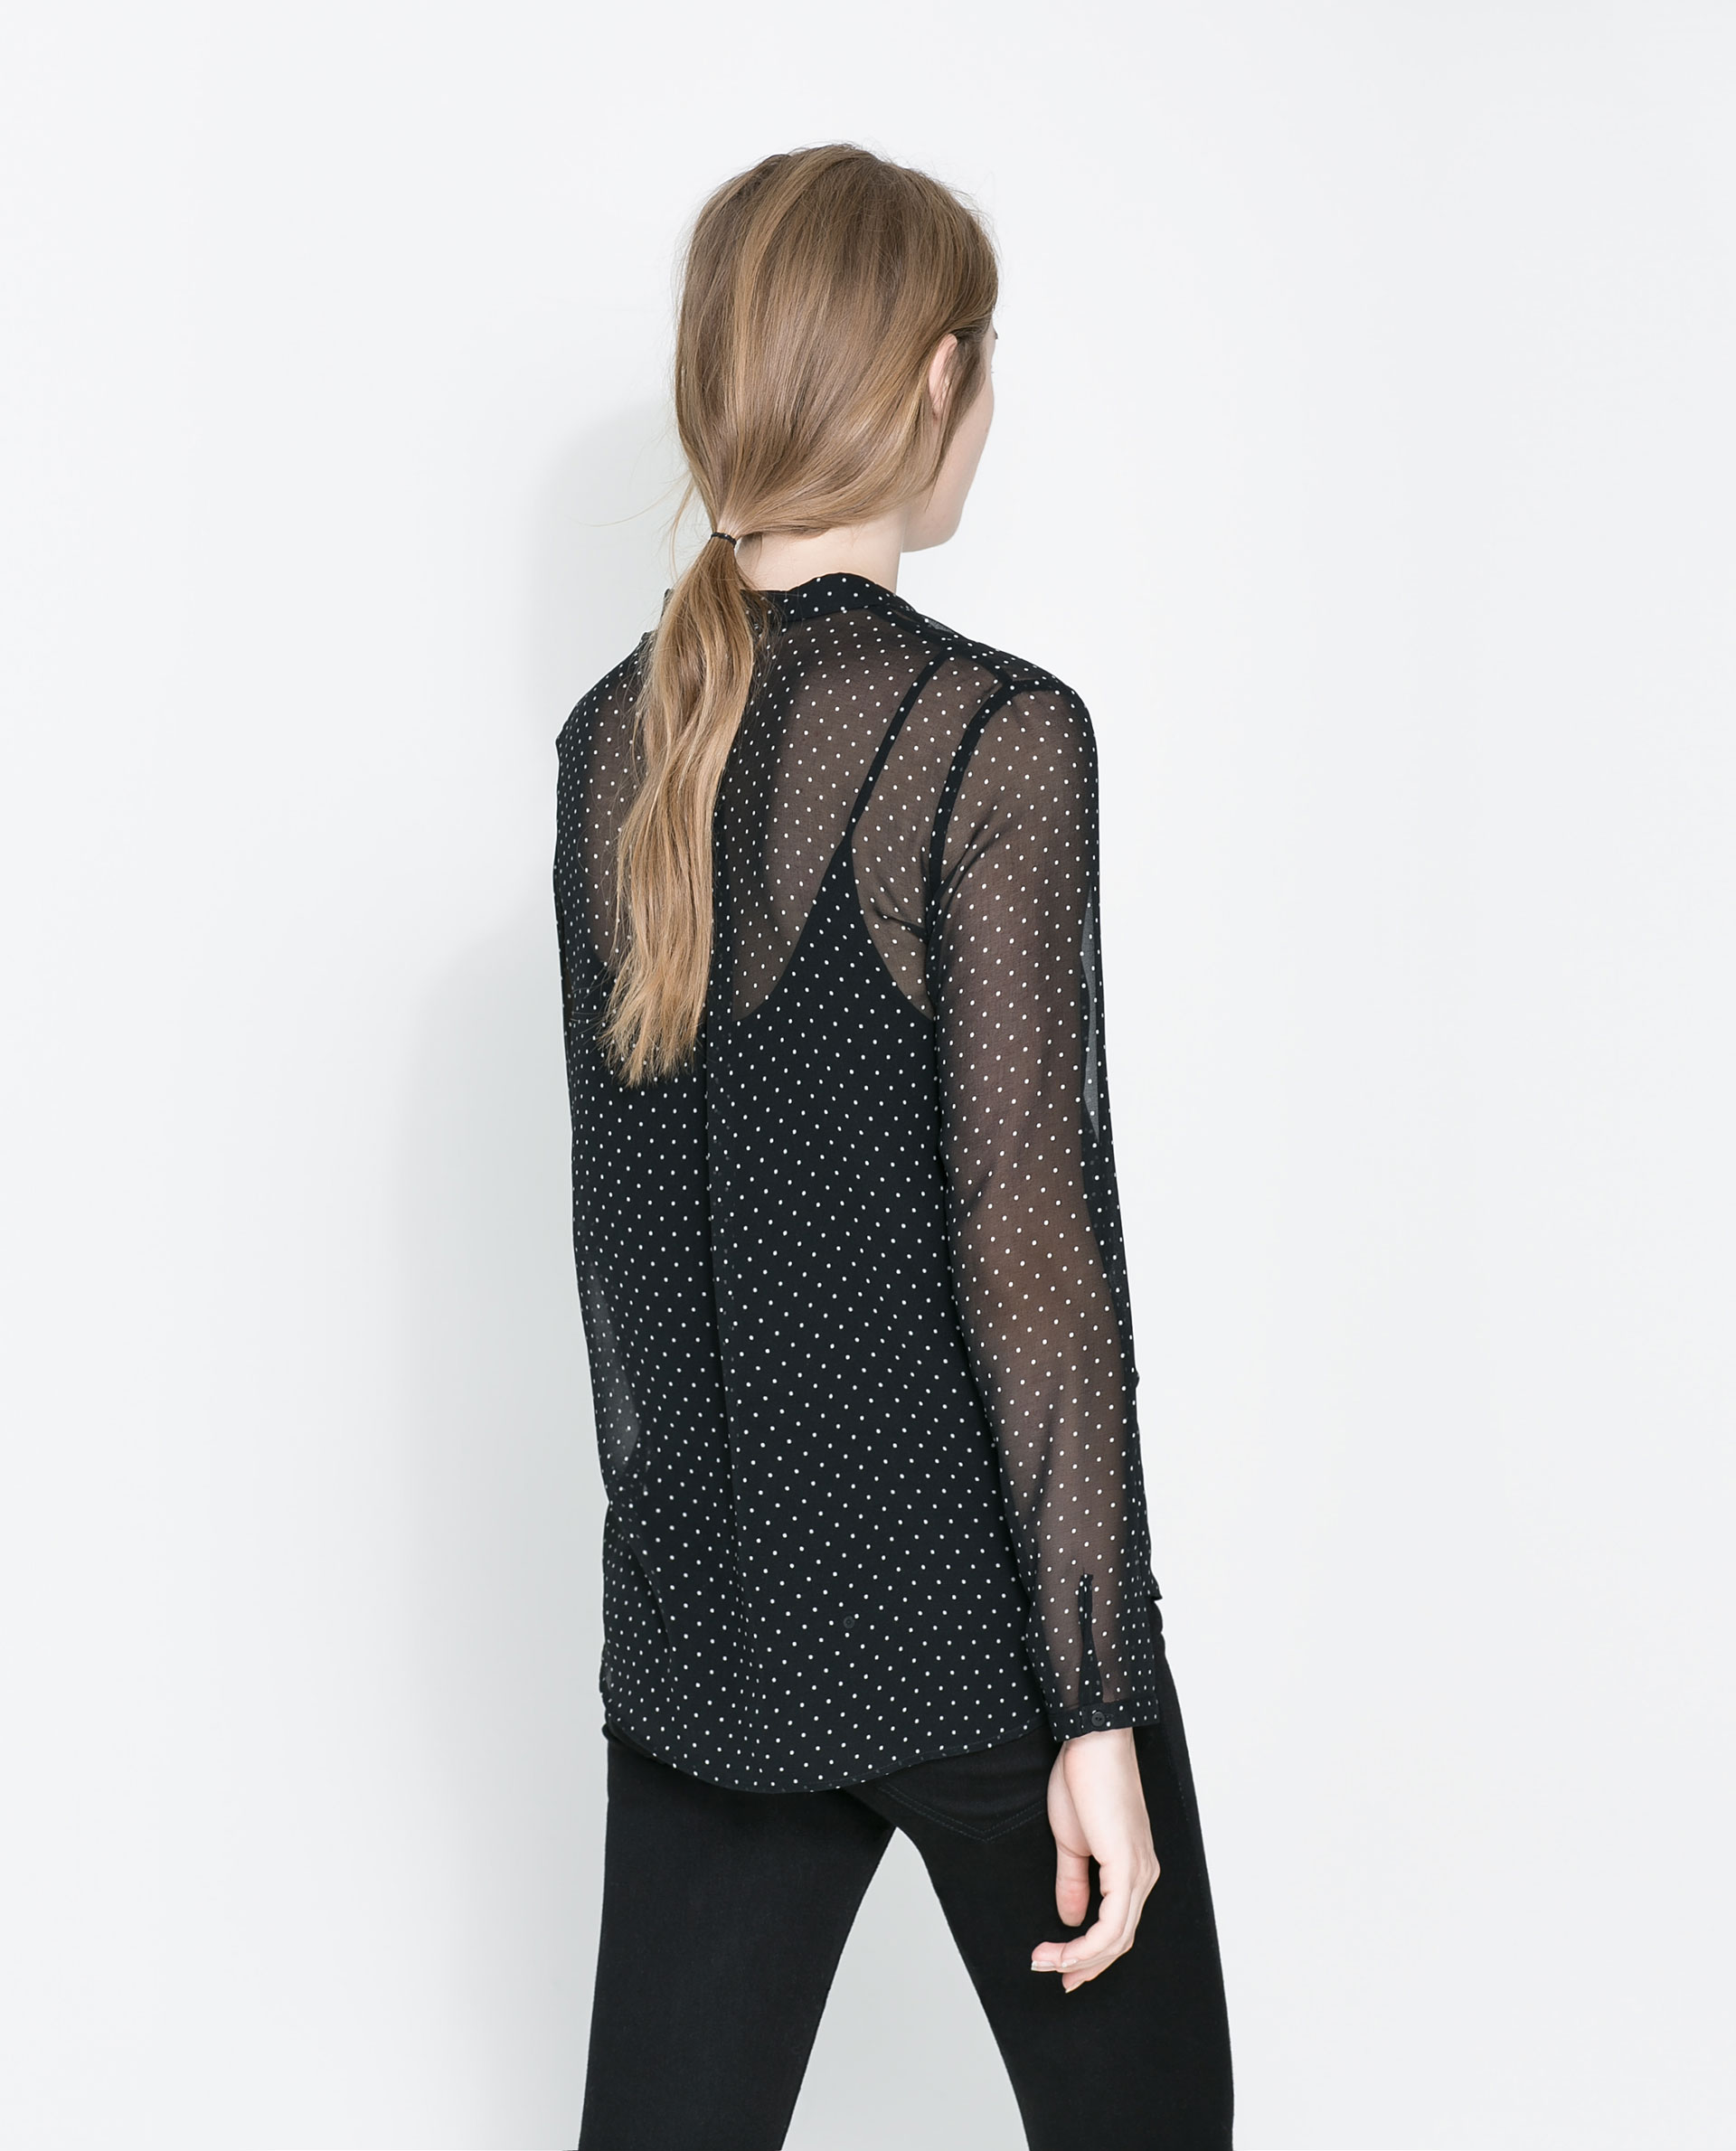 Zara Sheer Black Blouse 14